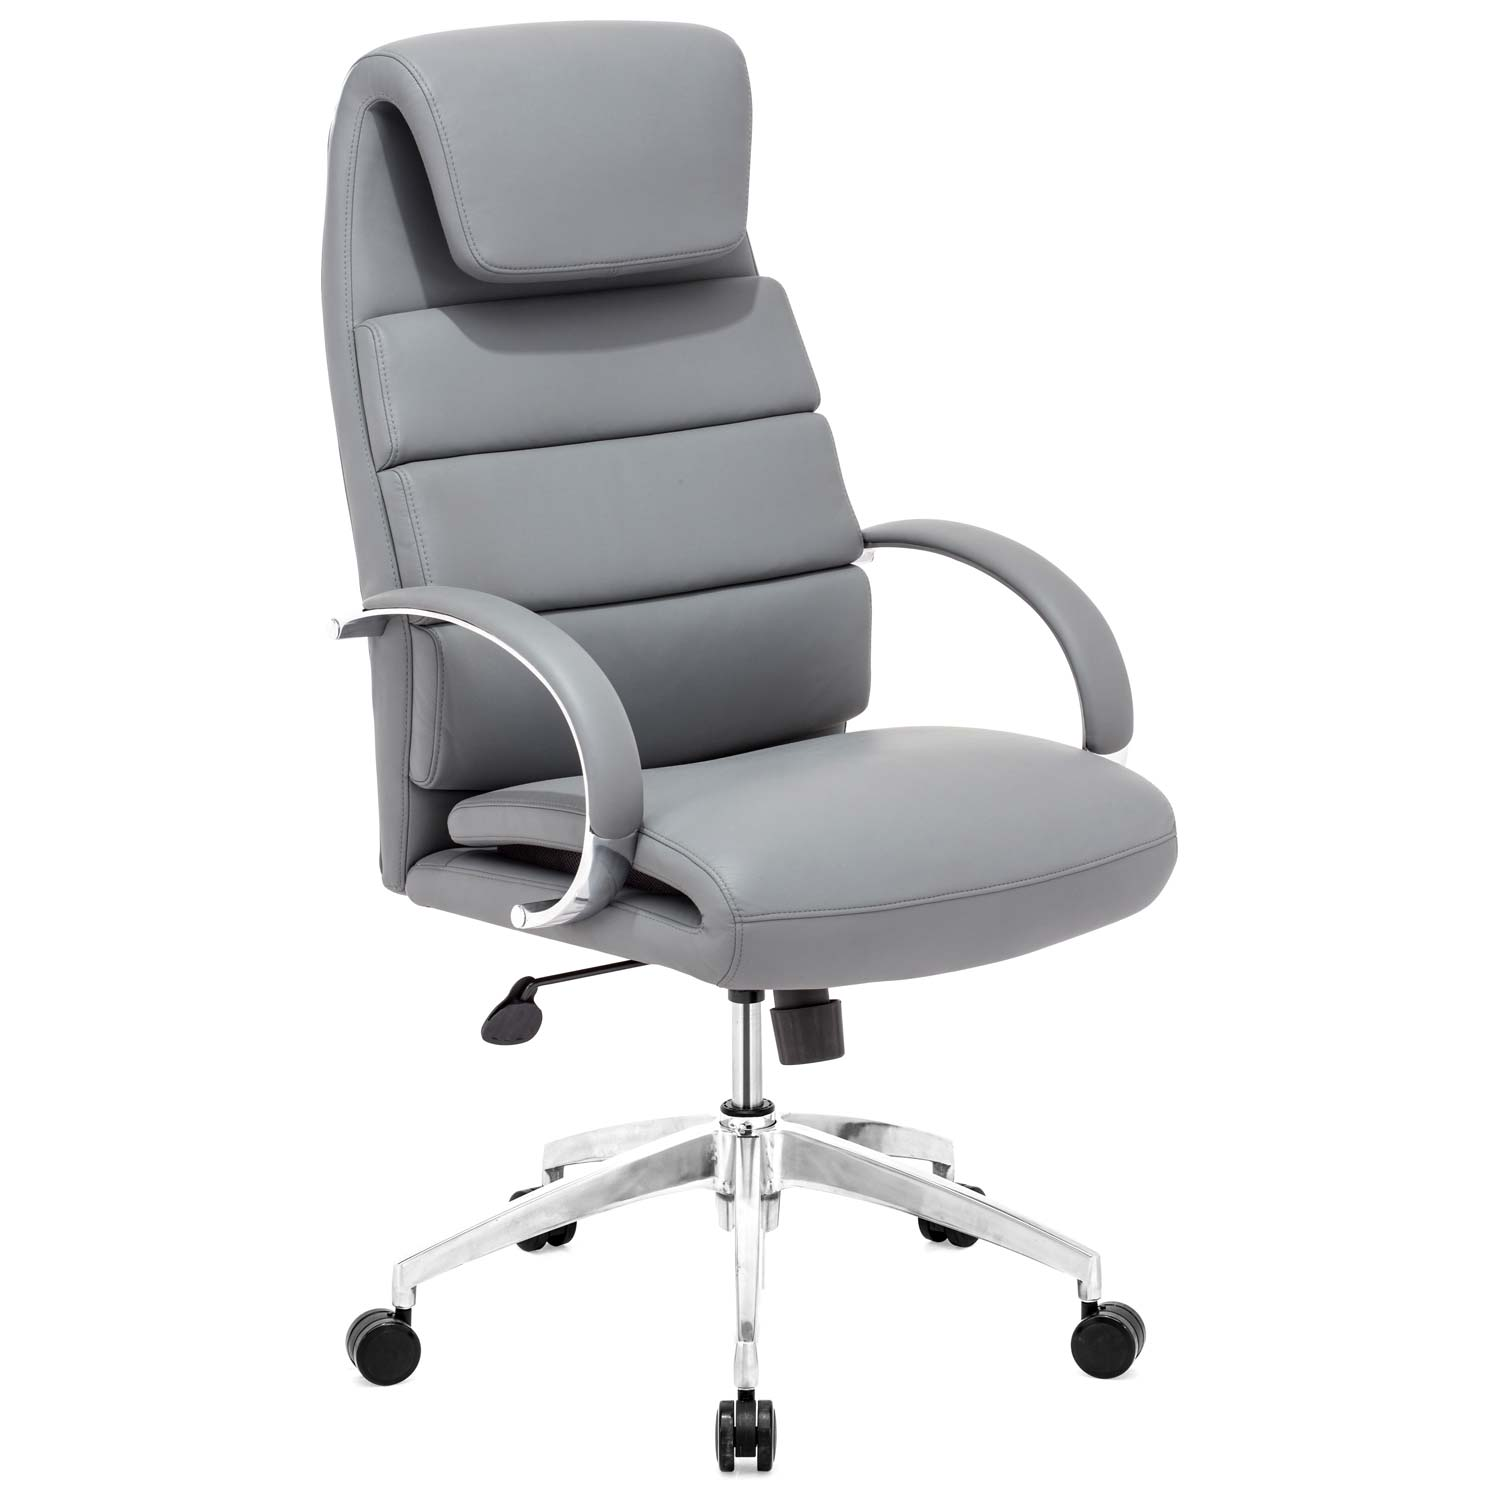 Lider Comfort Office - Chrome Steel, Gray